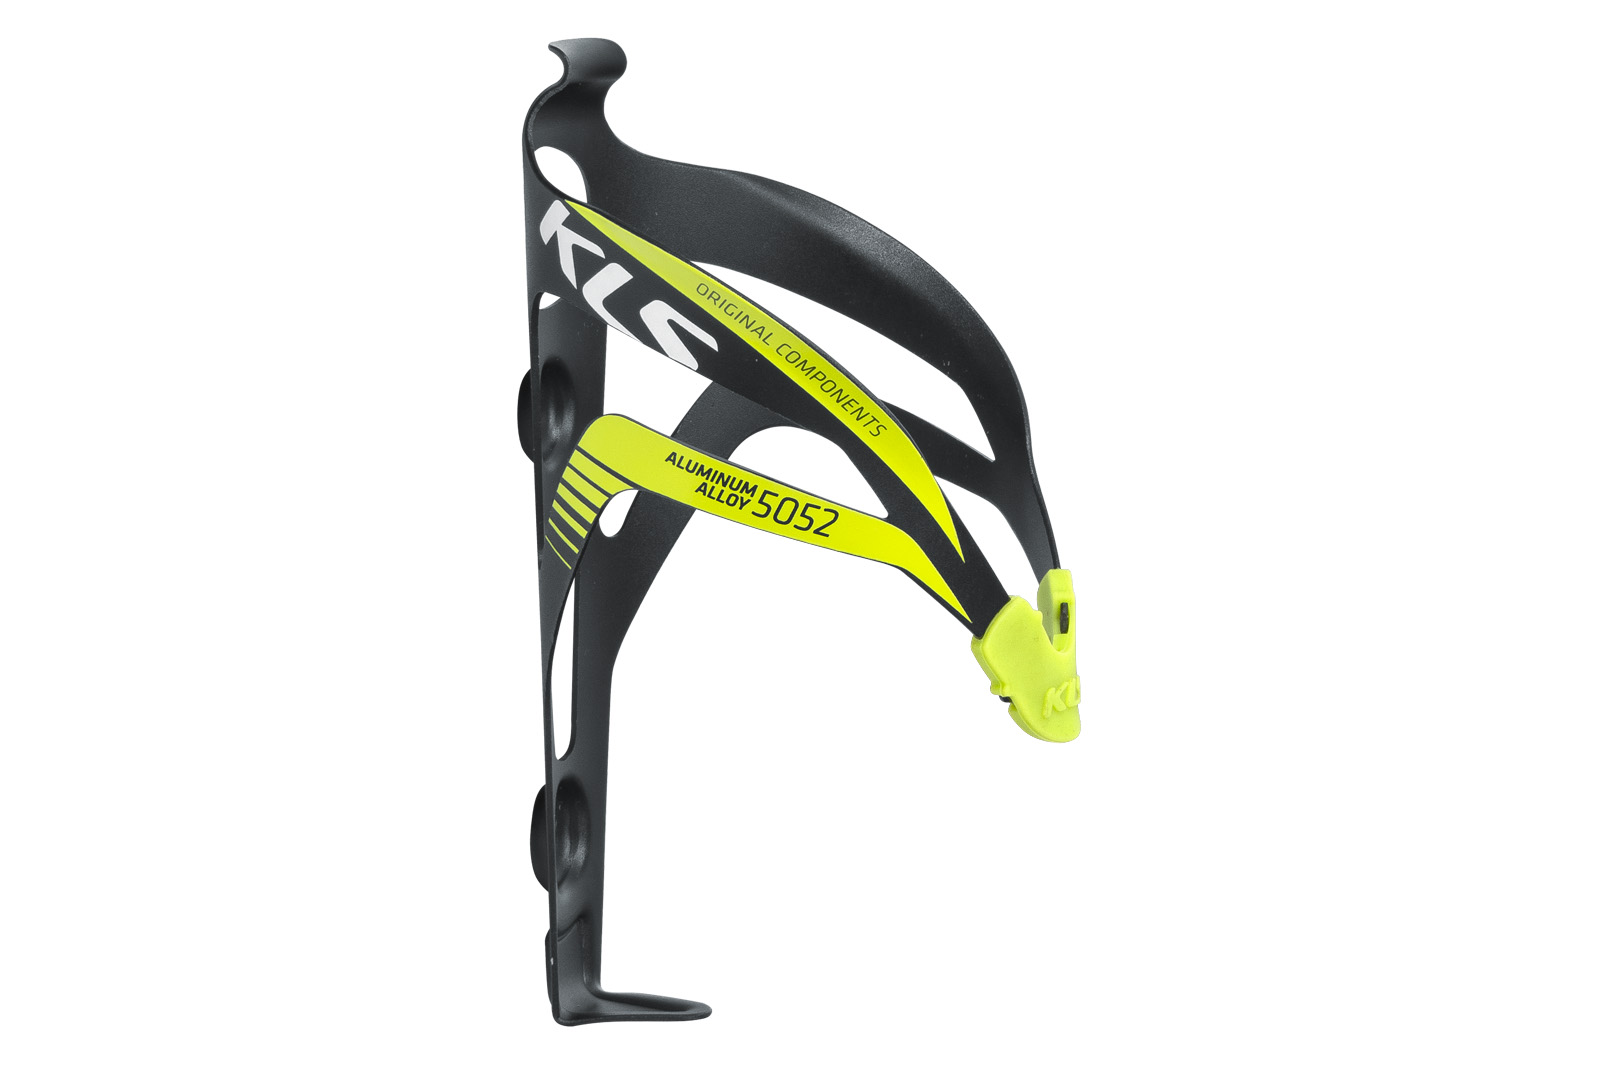 Flaschenhalter KLS BULLET lime - Sport Cycling Meindl - professional cycling